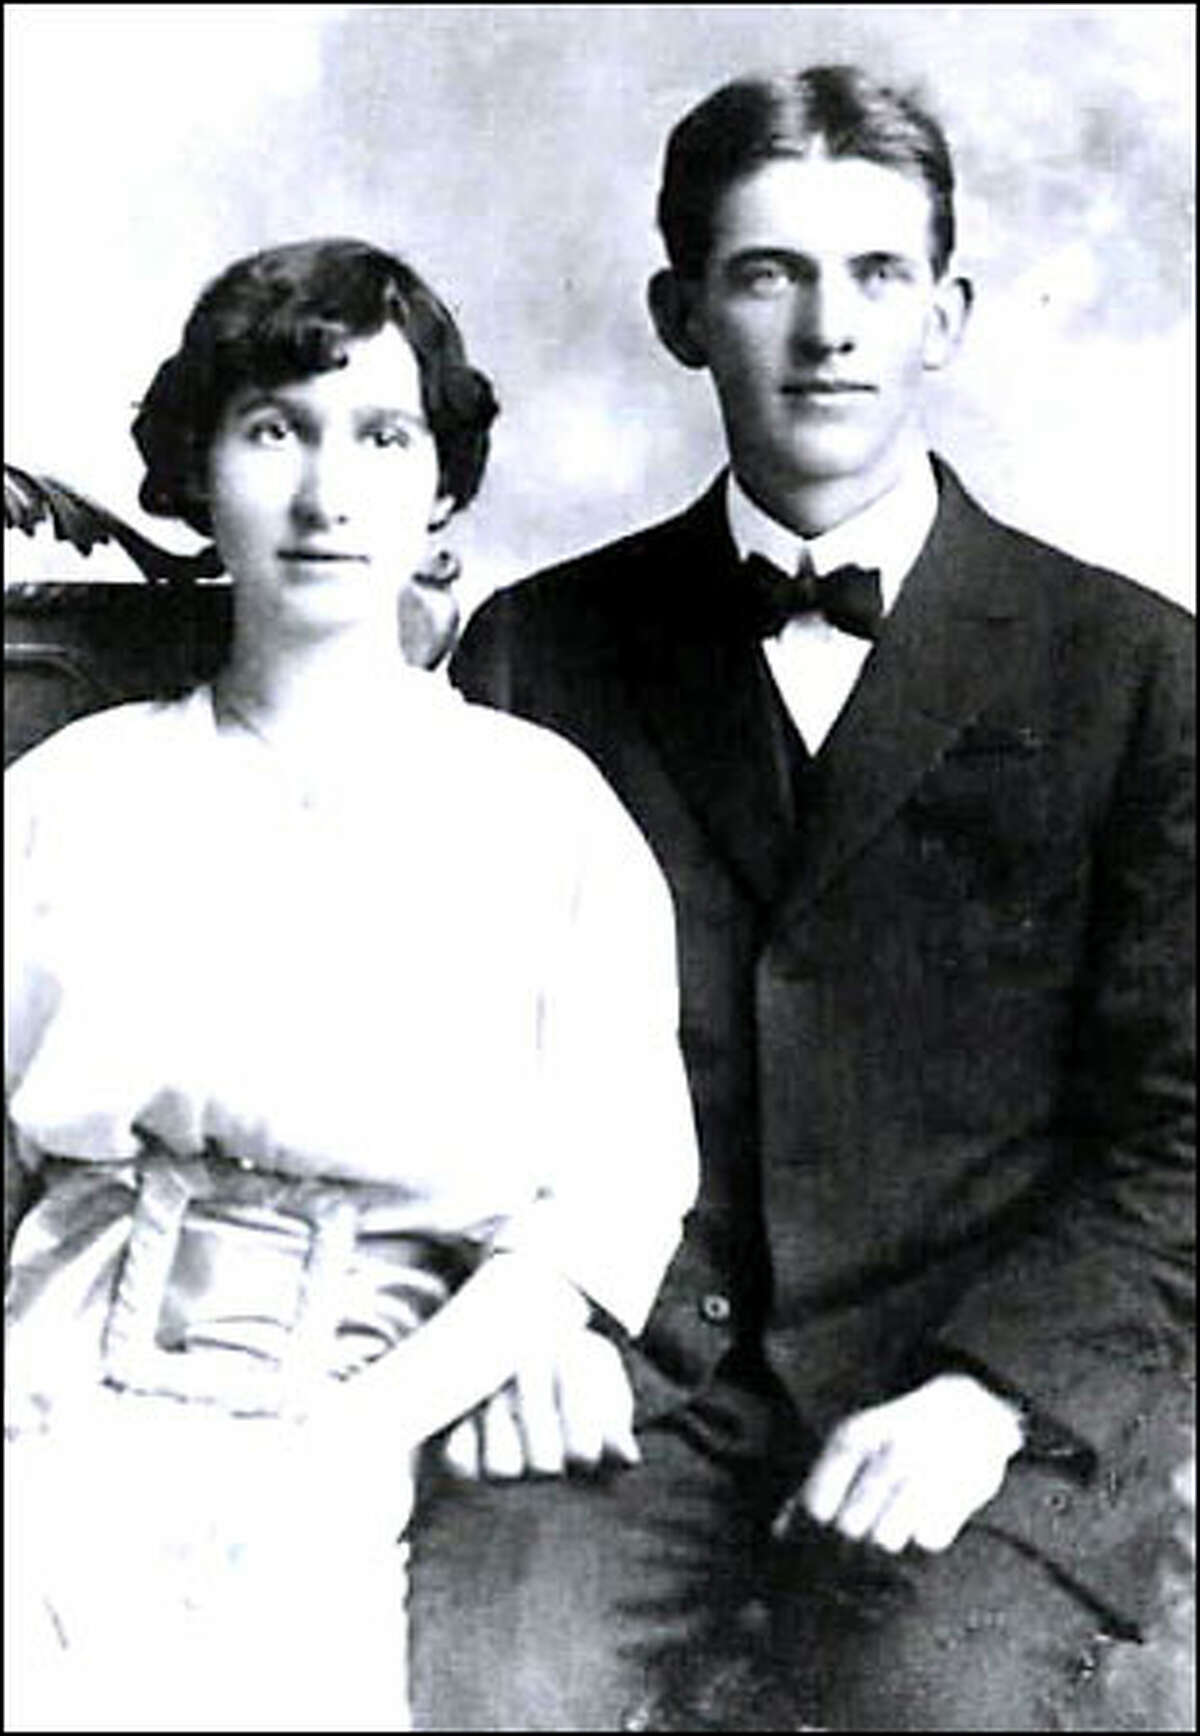 Blanche and Russell Warren vanished on their way home from Port Angeles in 1929 with a new washing machine.